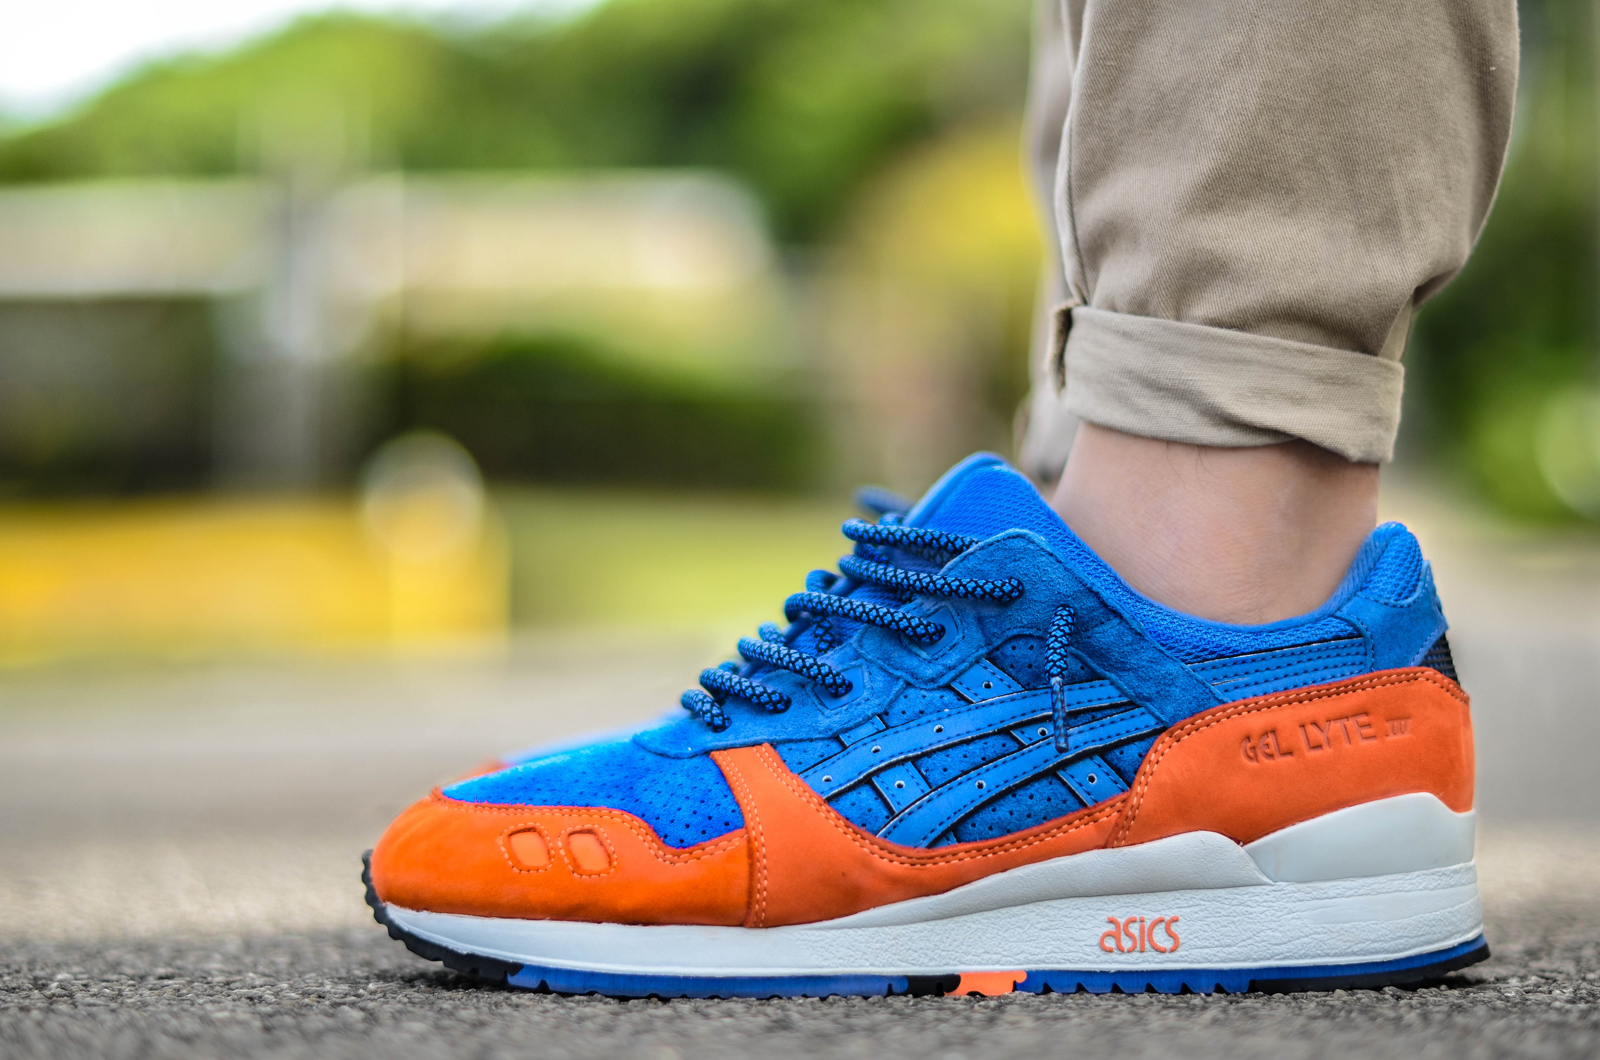 asics build up